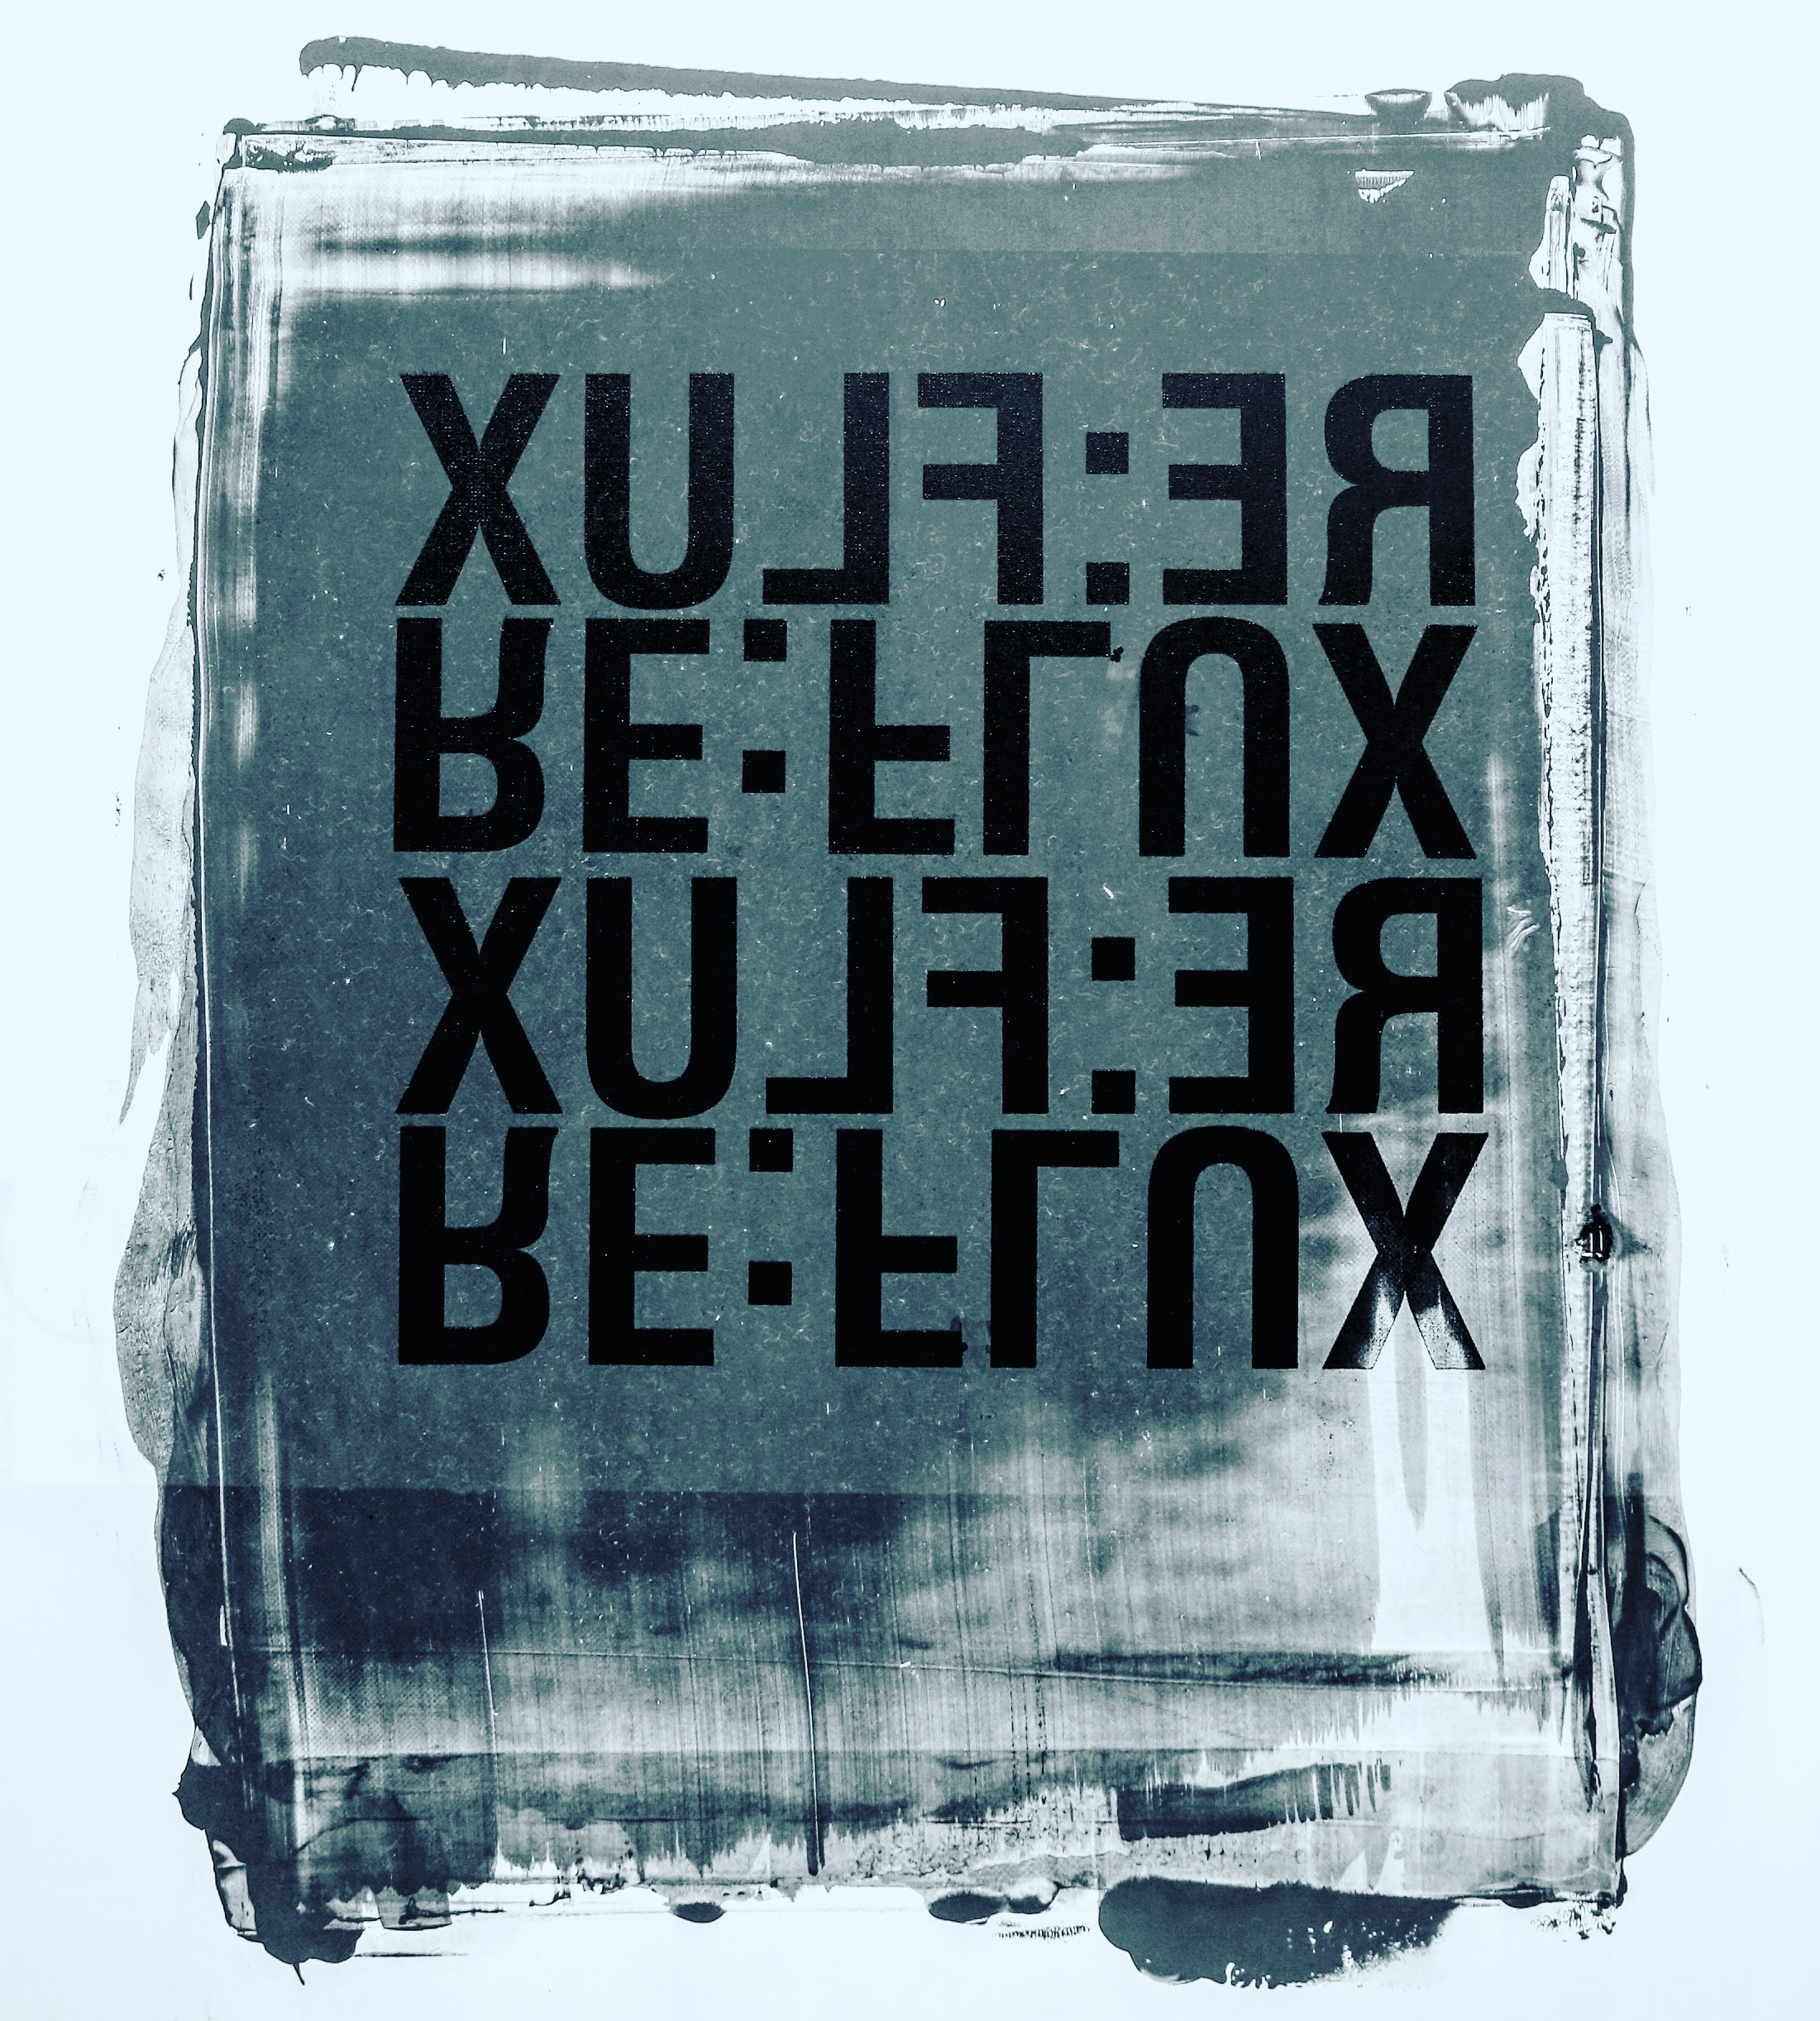 RE:FLUX 13  31 mai - 3 juin 2018 May 31 to June 3, 2018